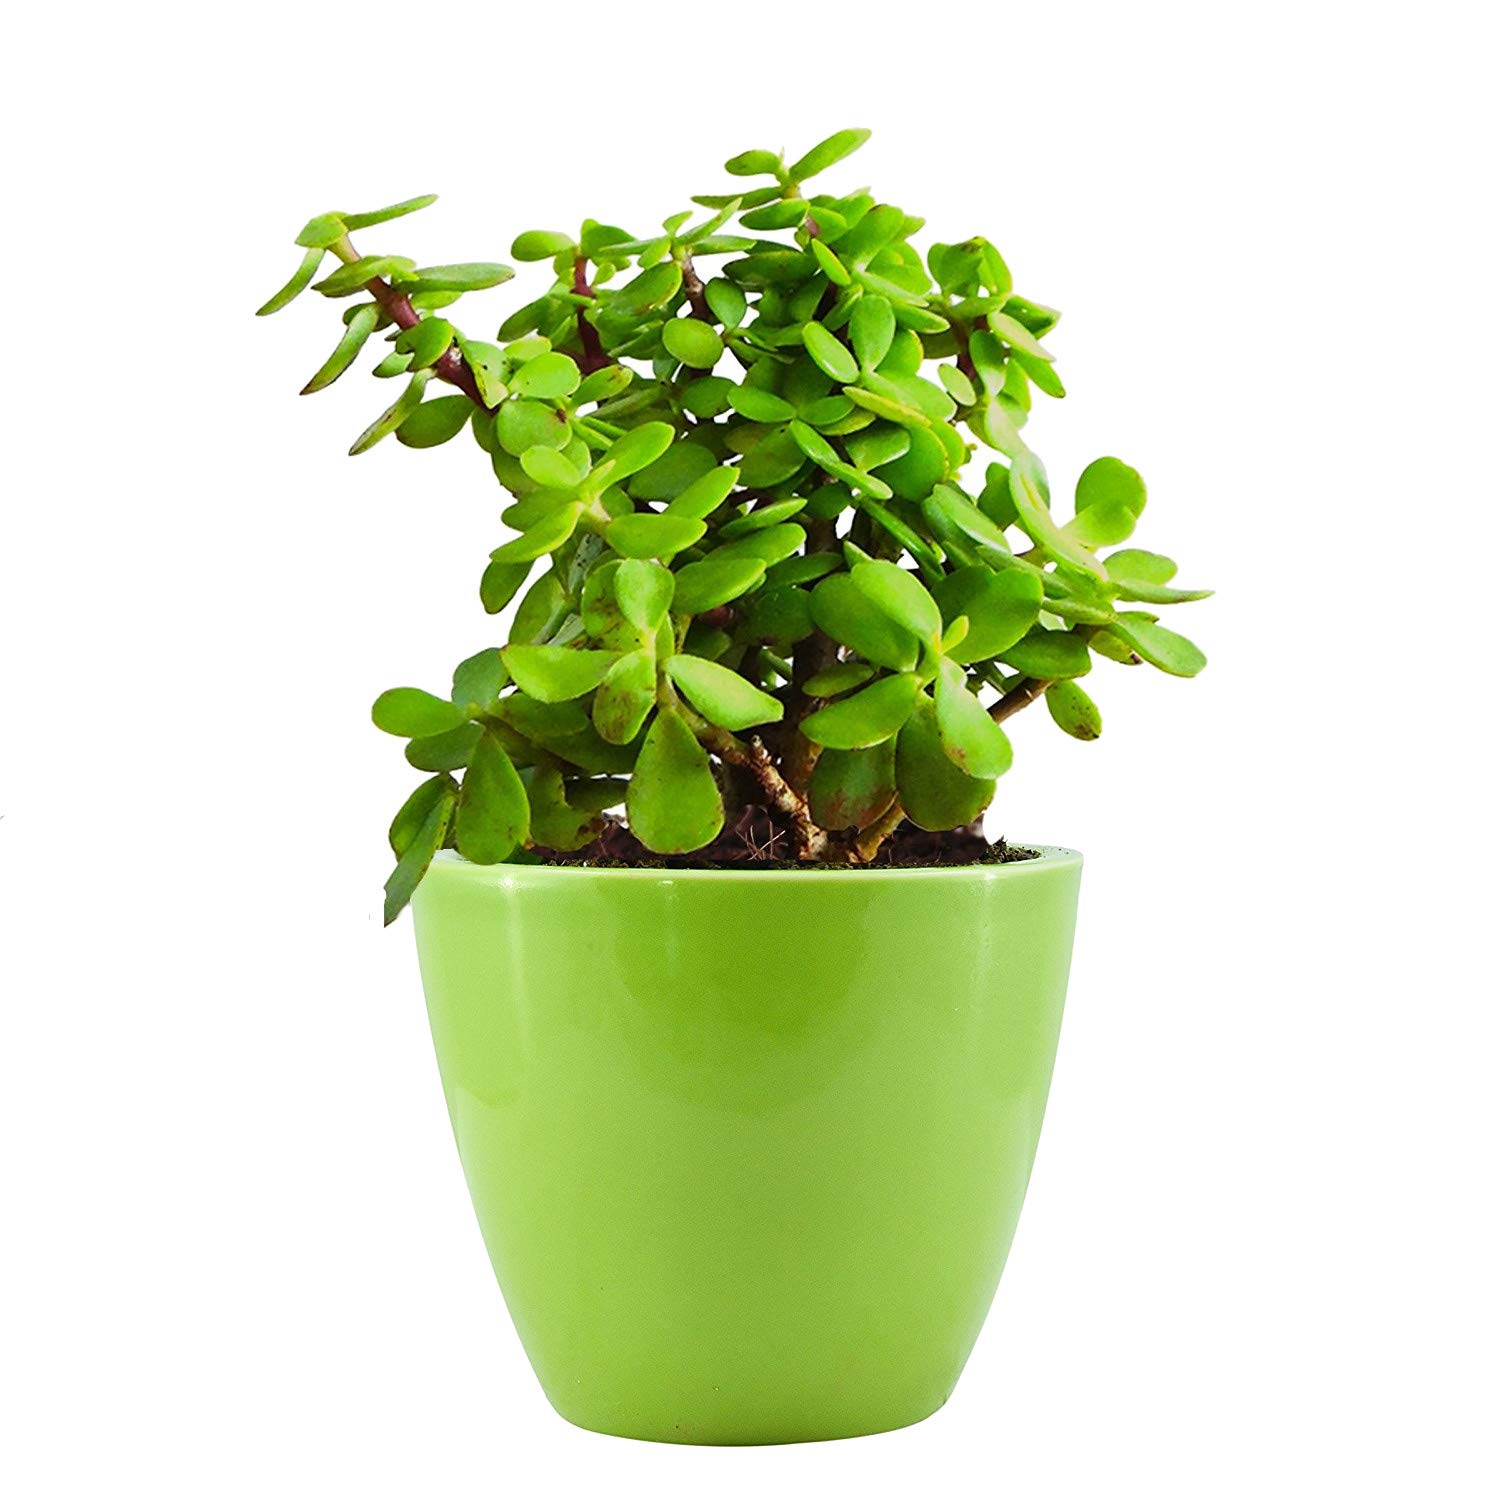 Amazon price history for Abana Homes Good Luck Jade Plant with Beautiful Pot - Air Purifier Plant